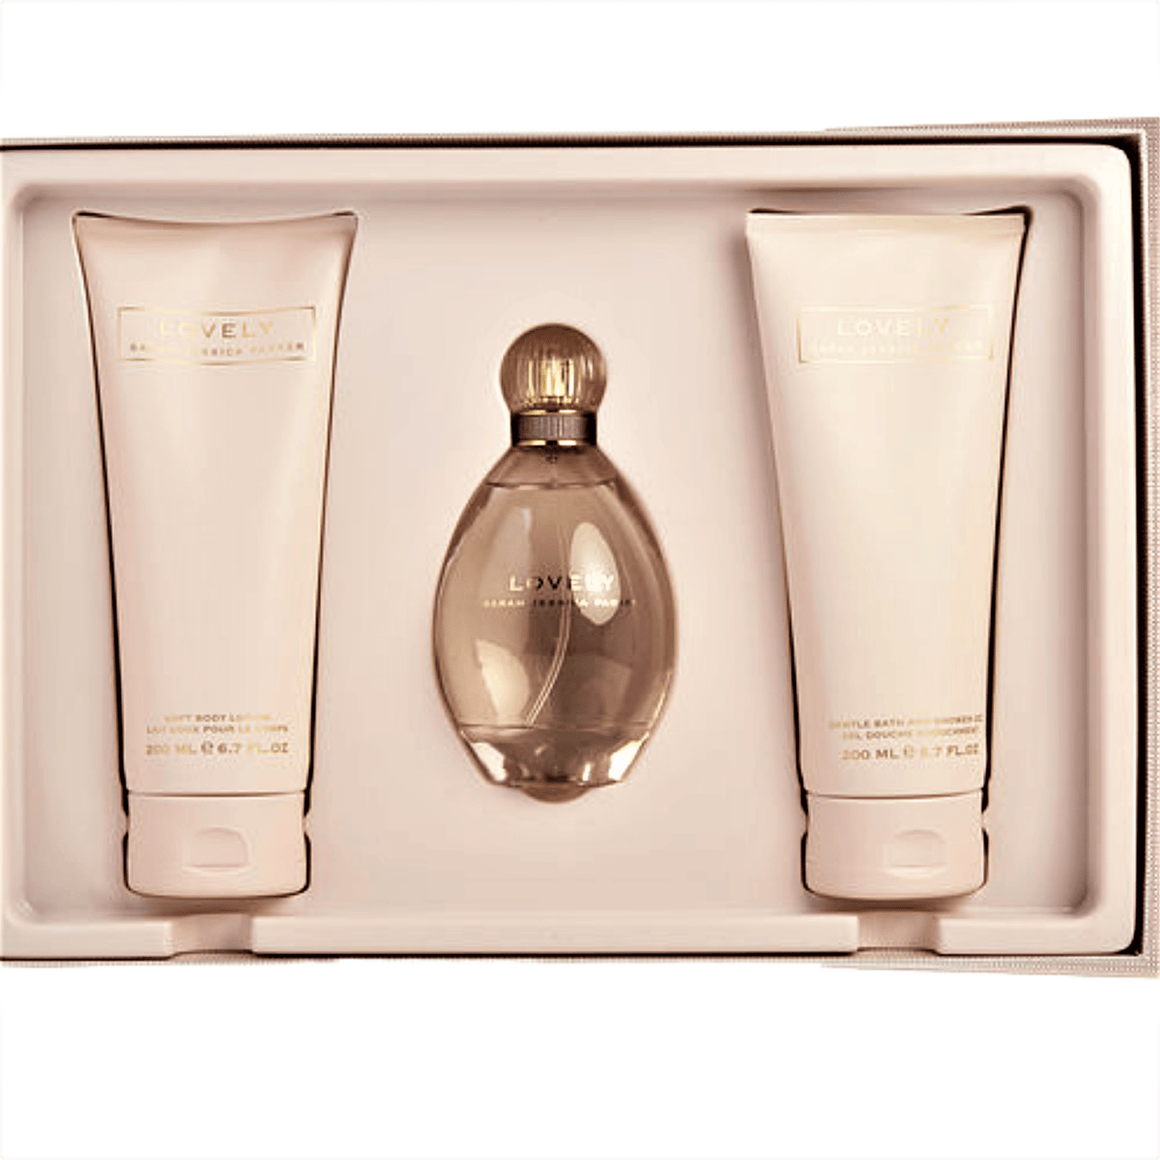 LOVELY BY SARAH JESSICA PARKER - 3 PIECE GIFT SET